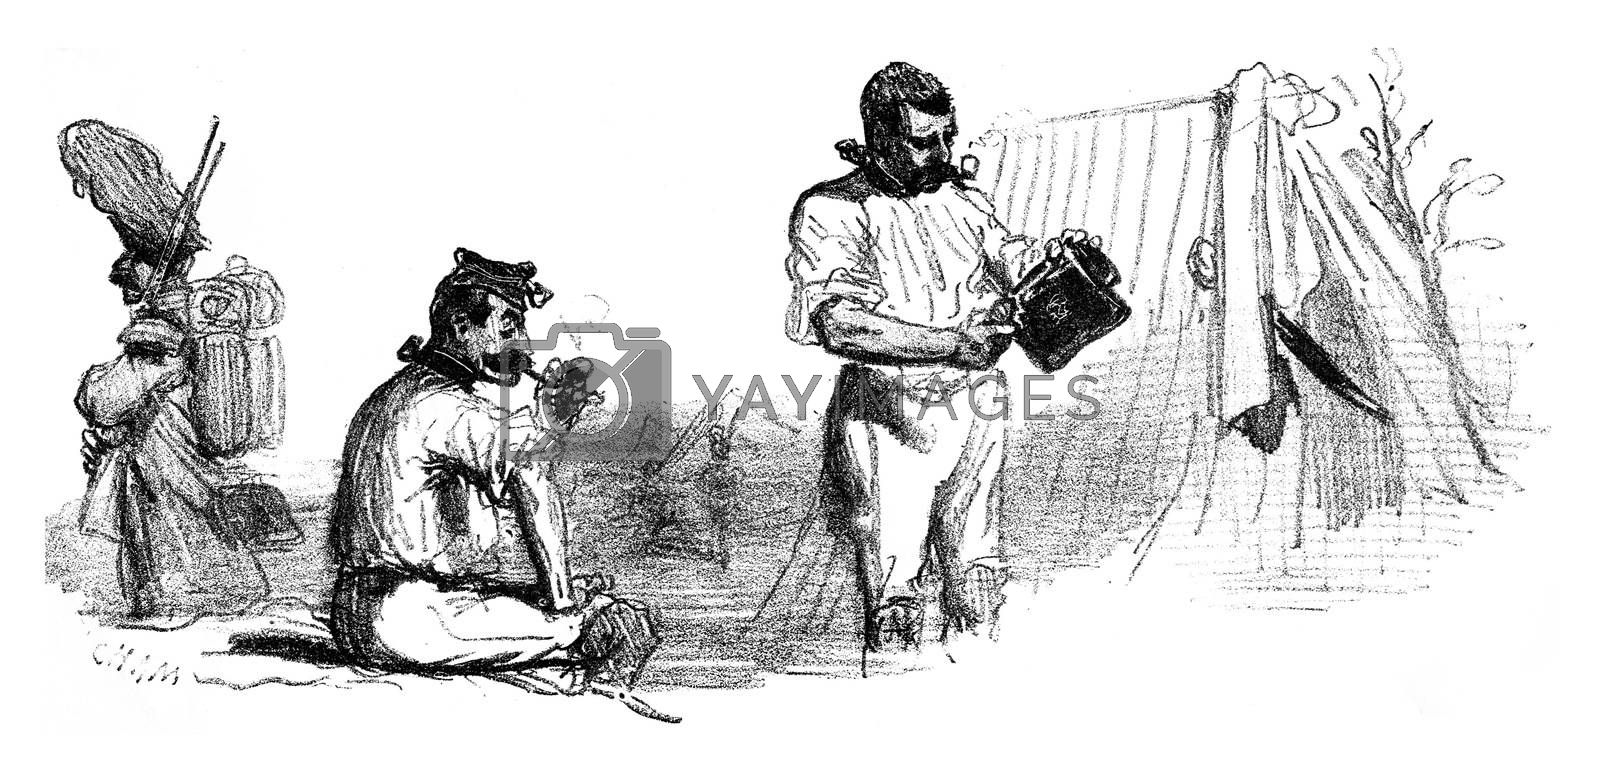 Short hair fashion, vintage engraved illustration. From The Tortures of Fashion.